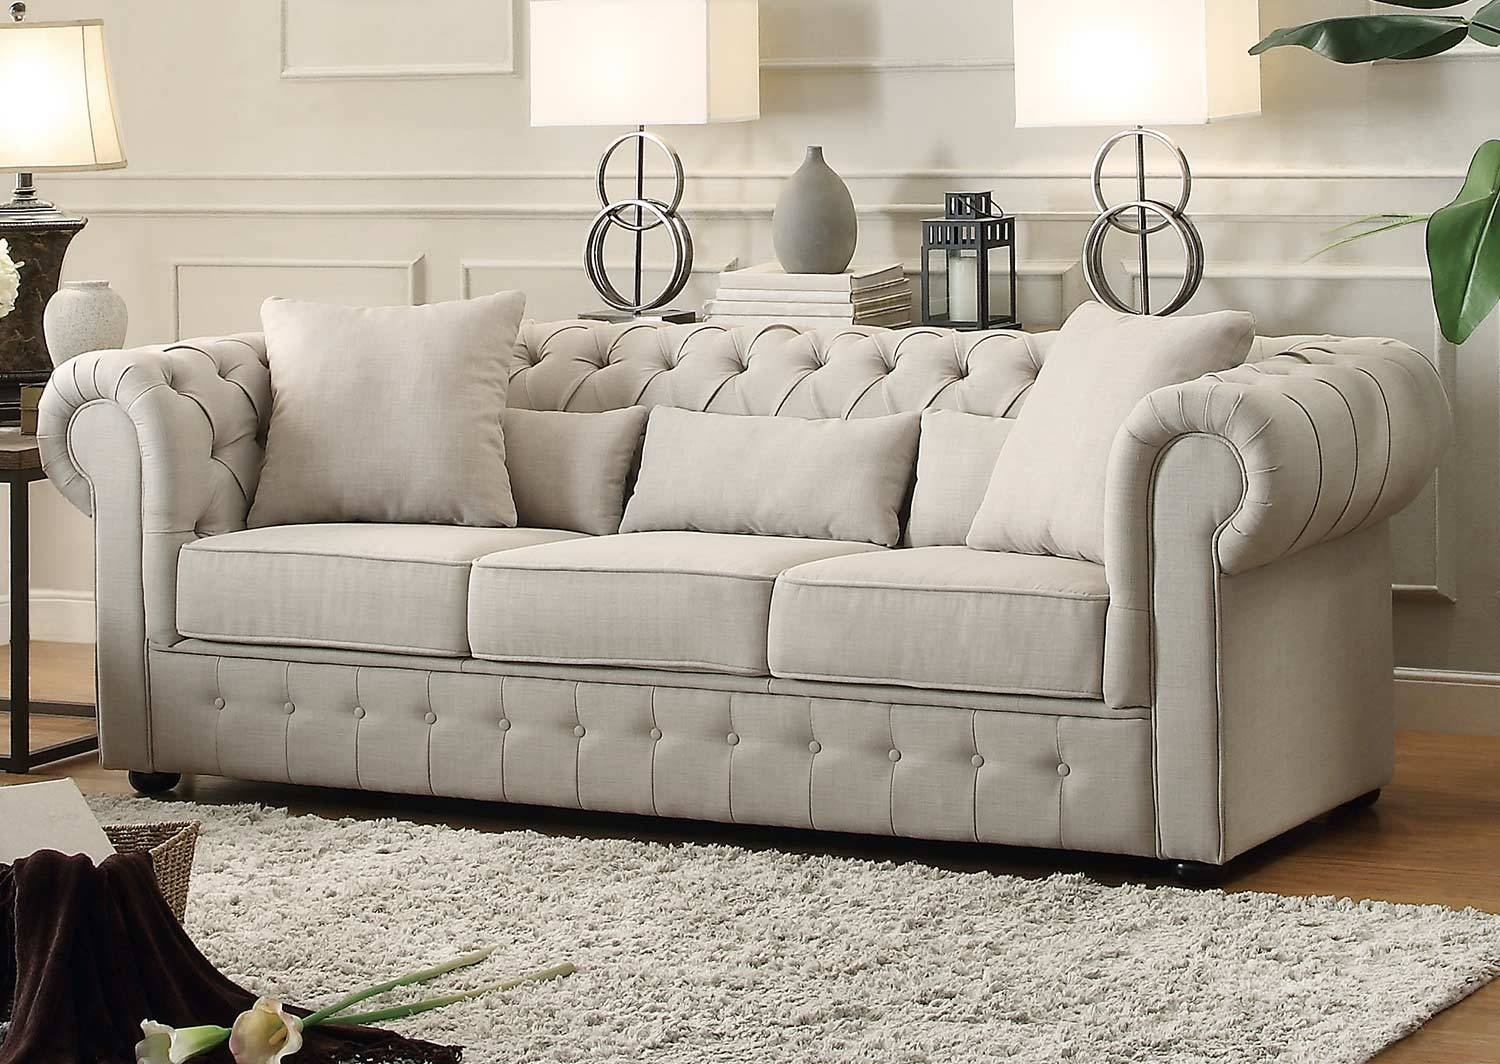 Homelegance Savonburg Sofa - Neutral 8427-3 with regard to Homelegance Sofas (Image 12 of 15)